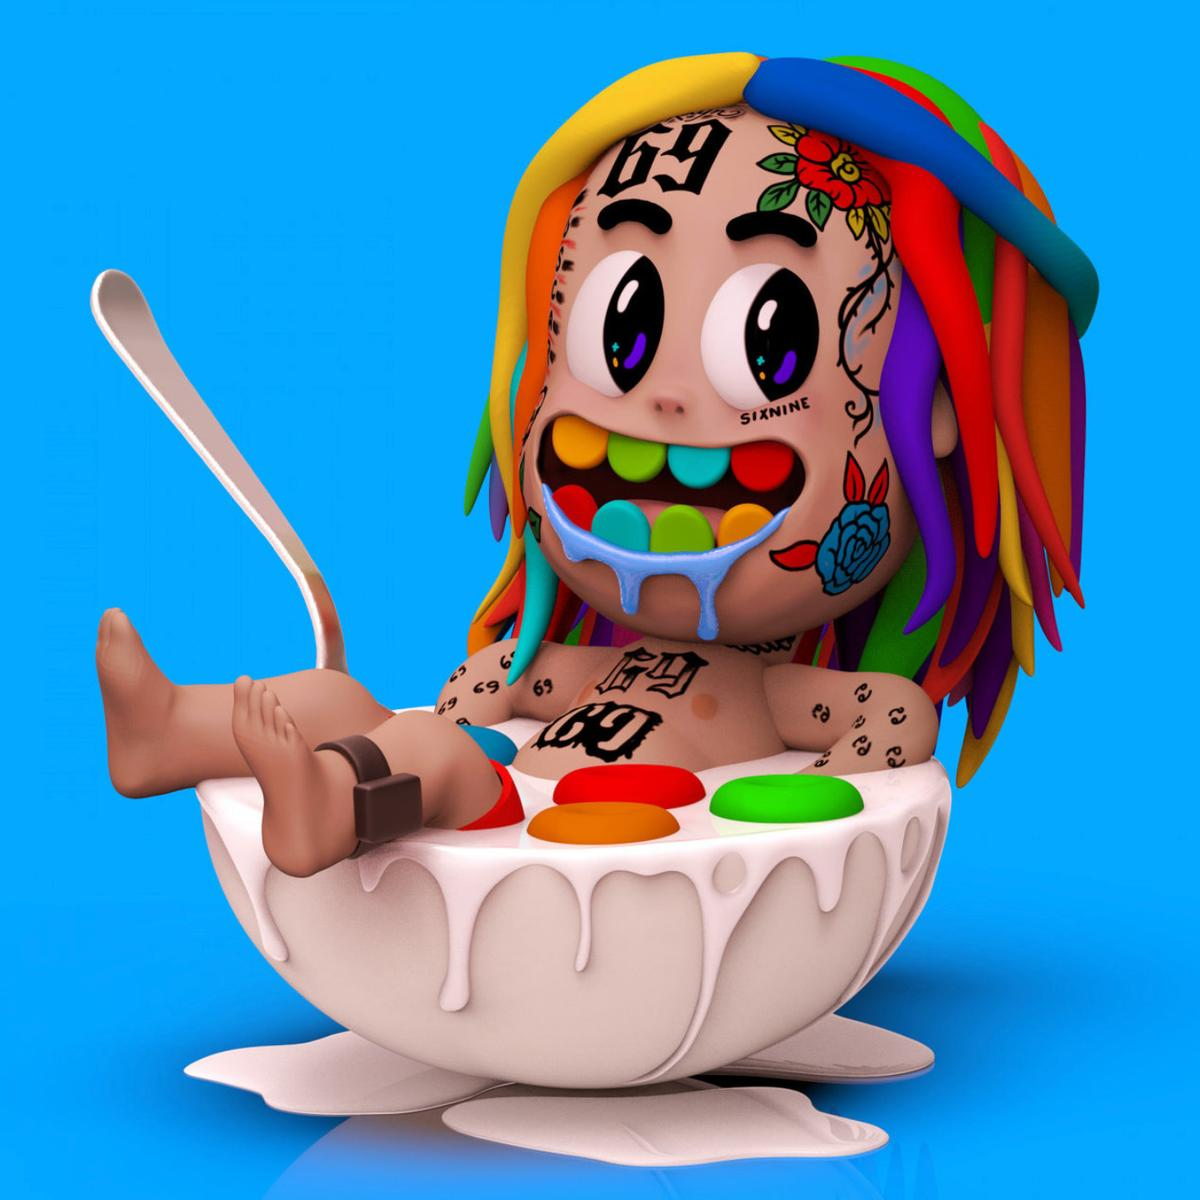 Tekashi 6ix9ine - YAYA Mp3 Download [iTunes + 320kbps]